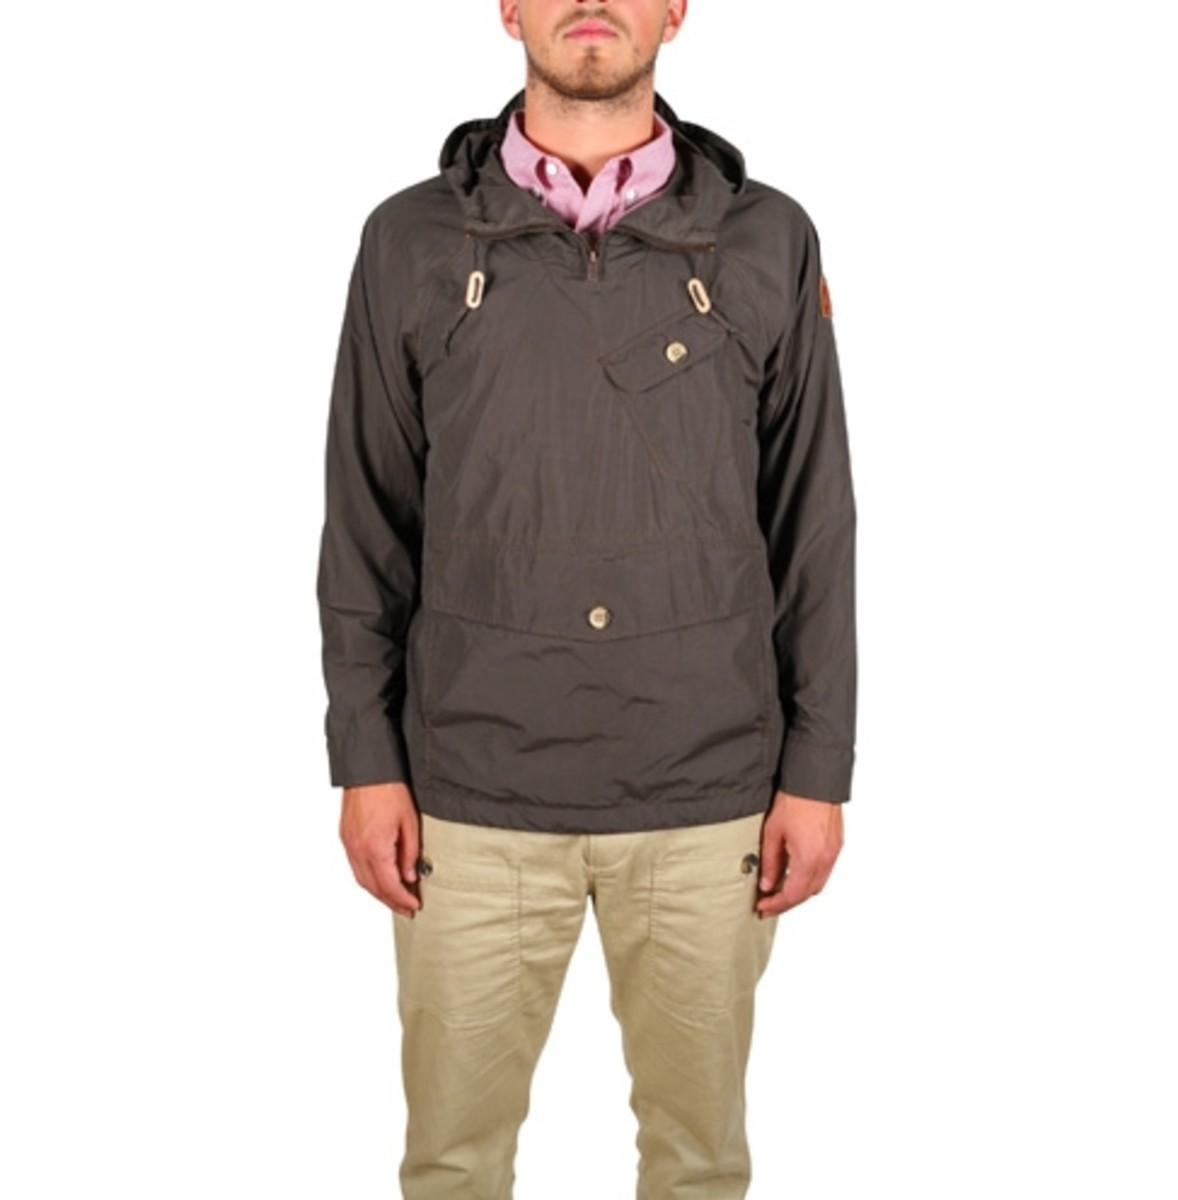 Penfield SS2011 Jackets 47